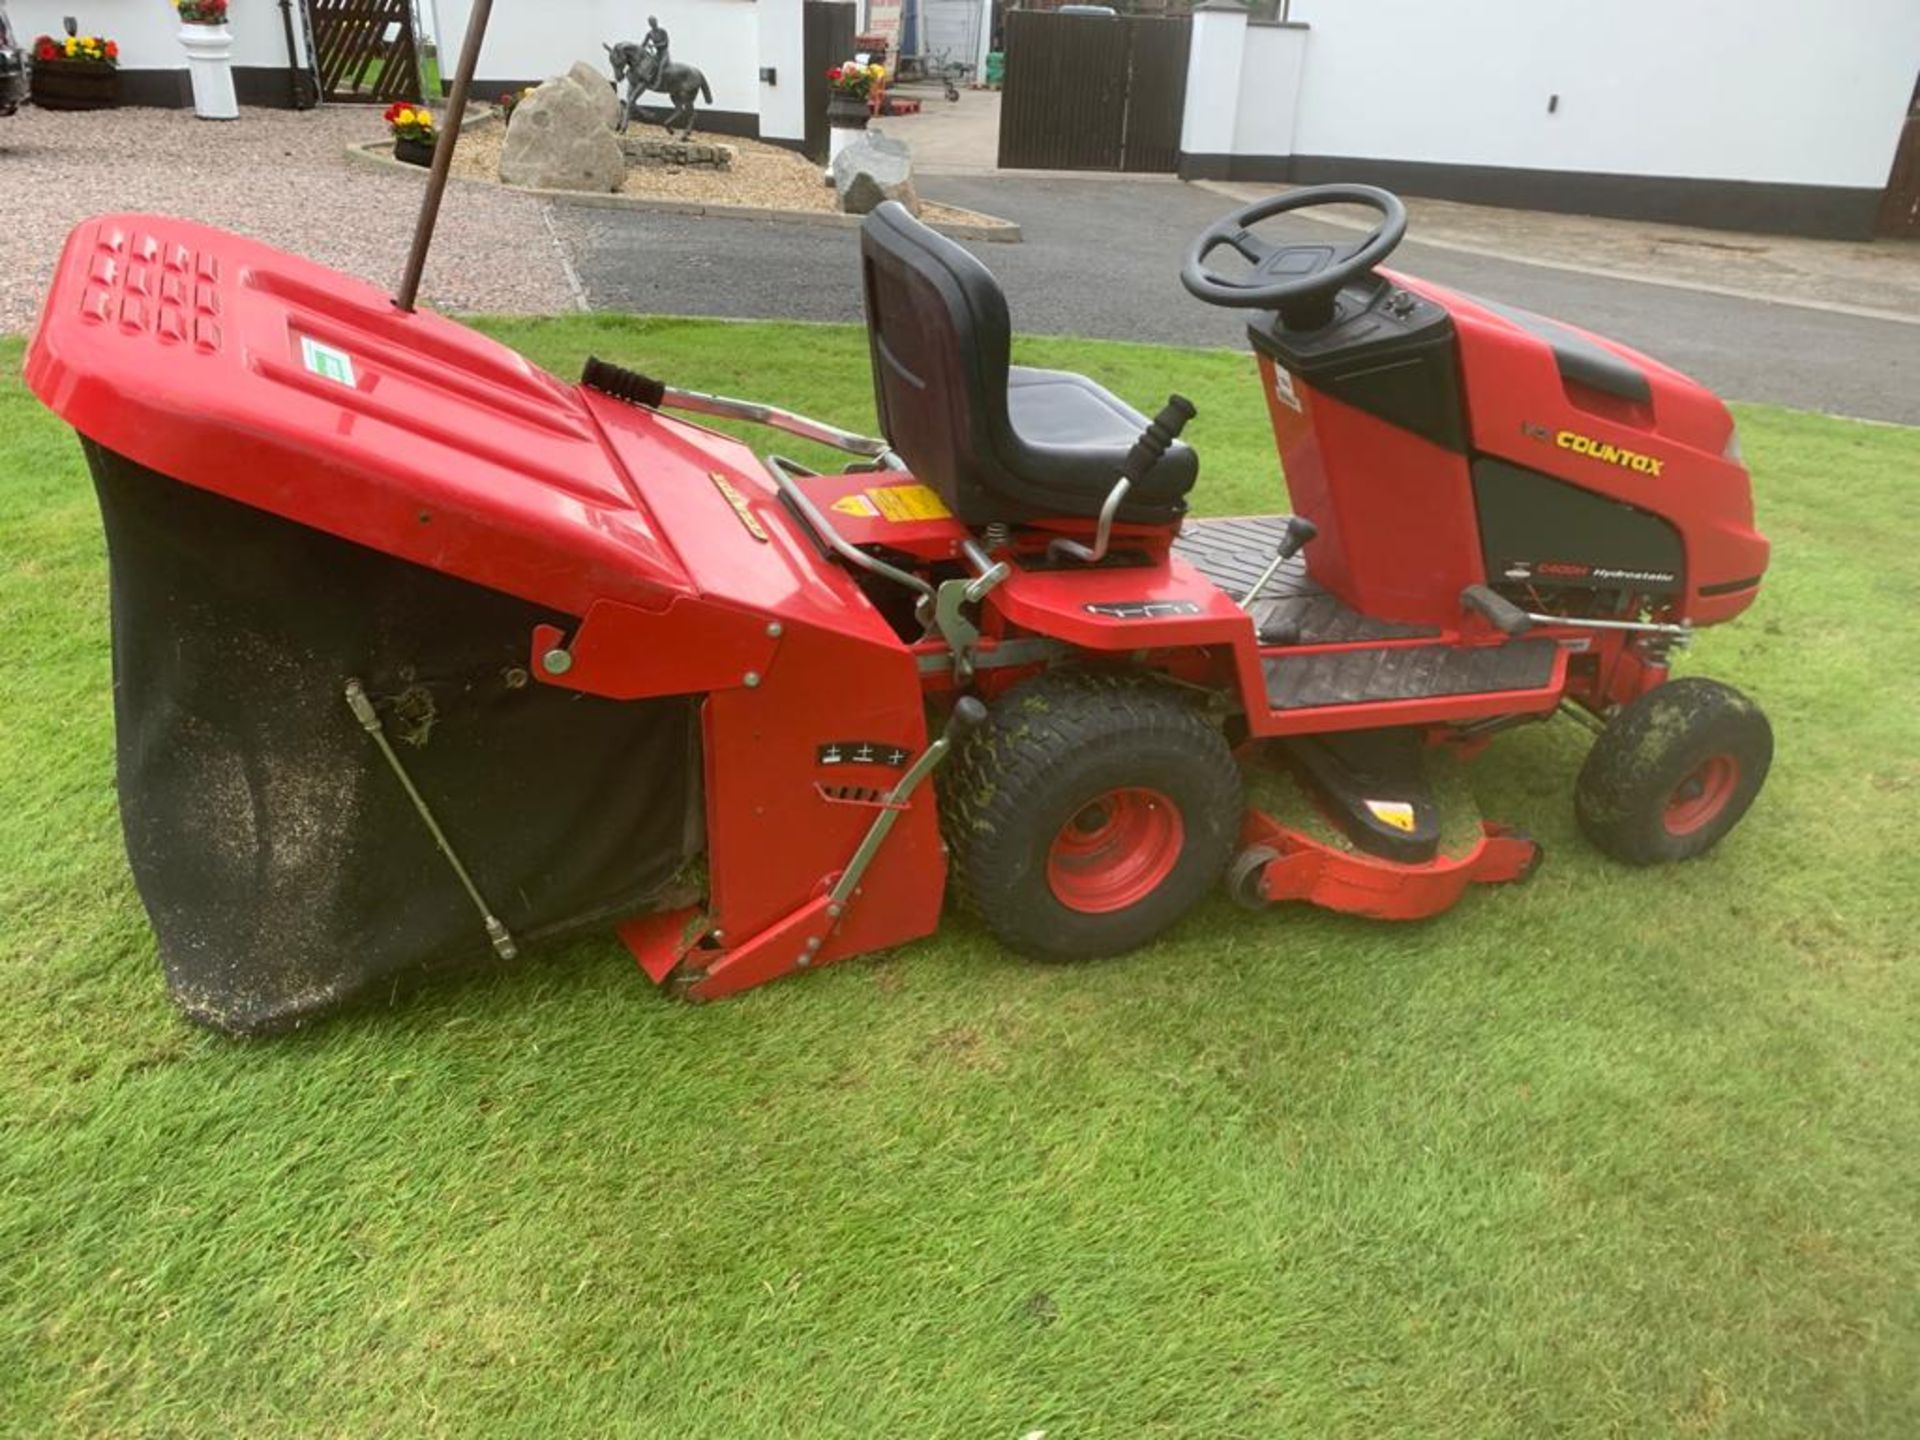 COUNTAX C400H HYDROSTATIC PETROL RIDE ON LAWN MOWER WITH SWEEPER *PLUS VAT* - Image 4 of 7